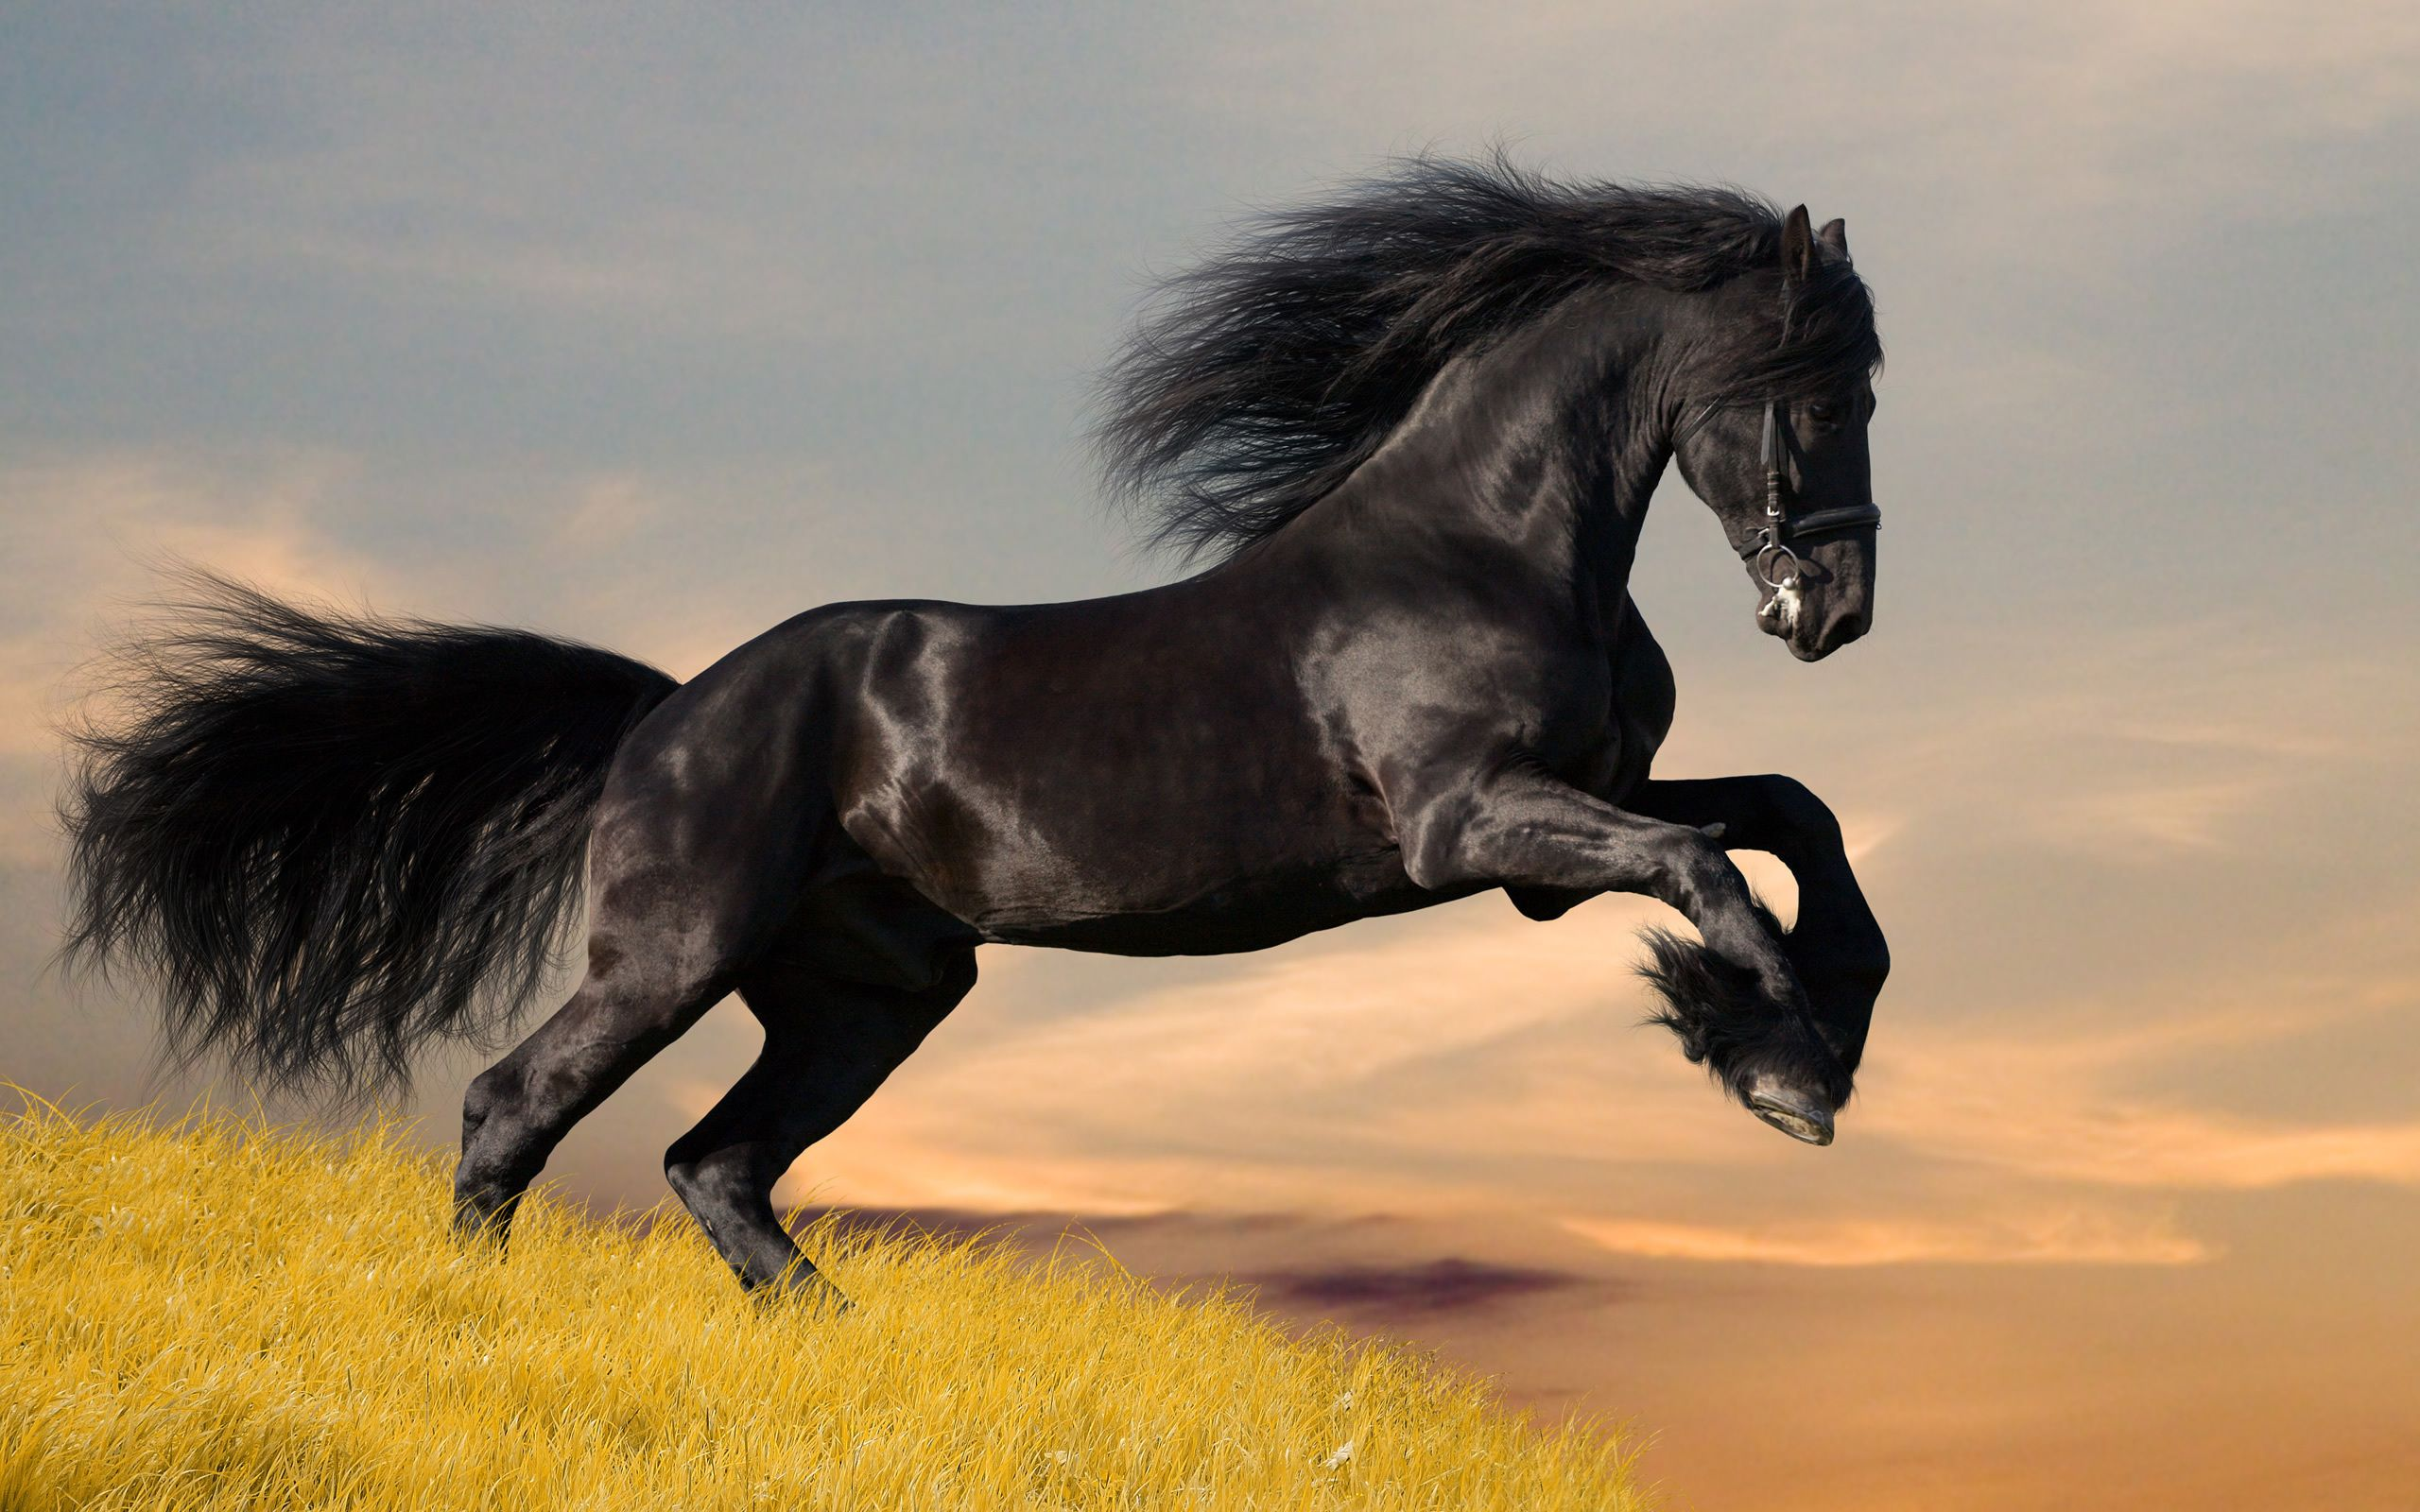 Most Inspiring Wallpaper Horse Country - a07a774a42c3b9668ba10bbee6cc4a72  Best Photo Reference_939734.jpg